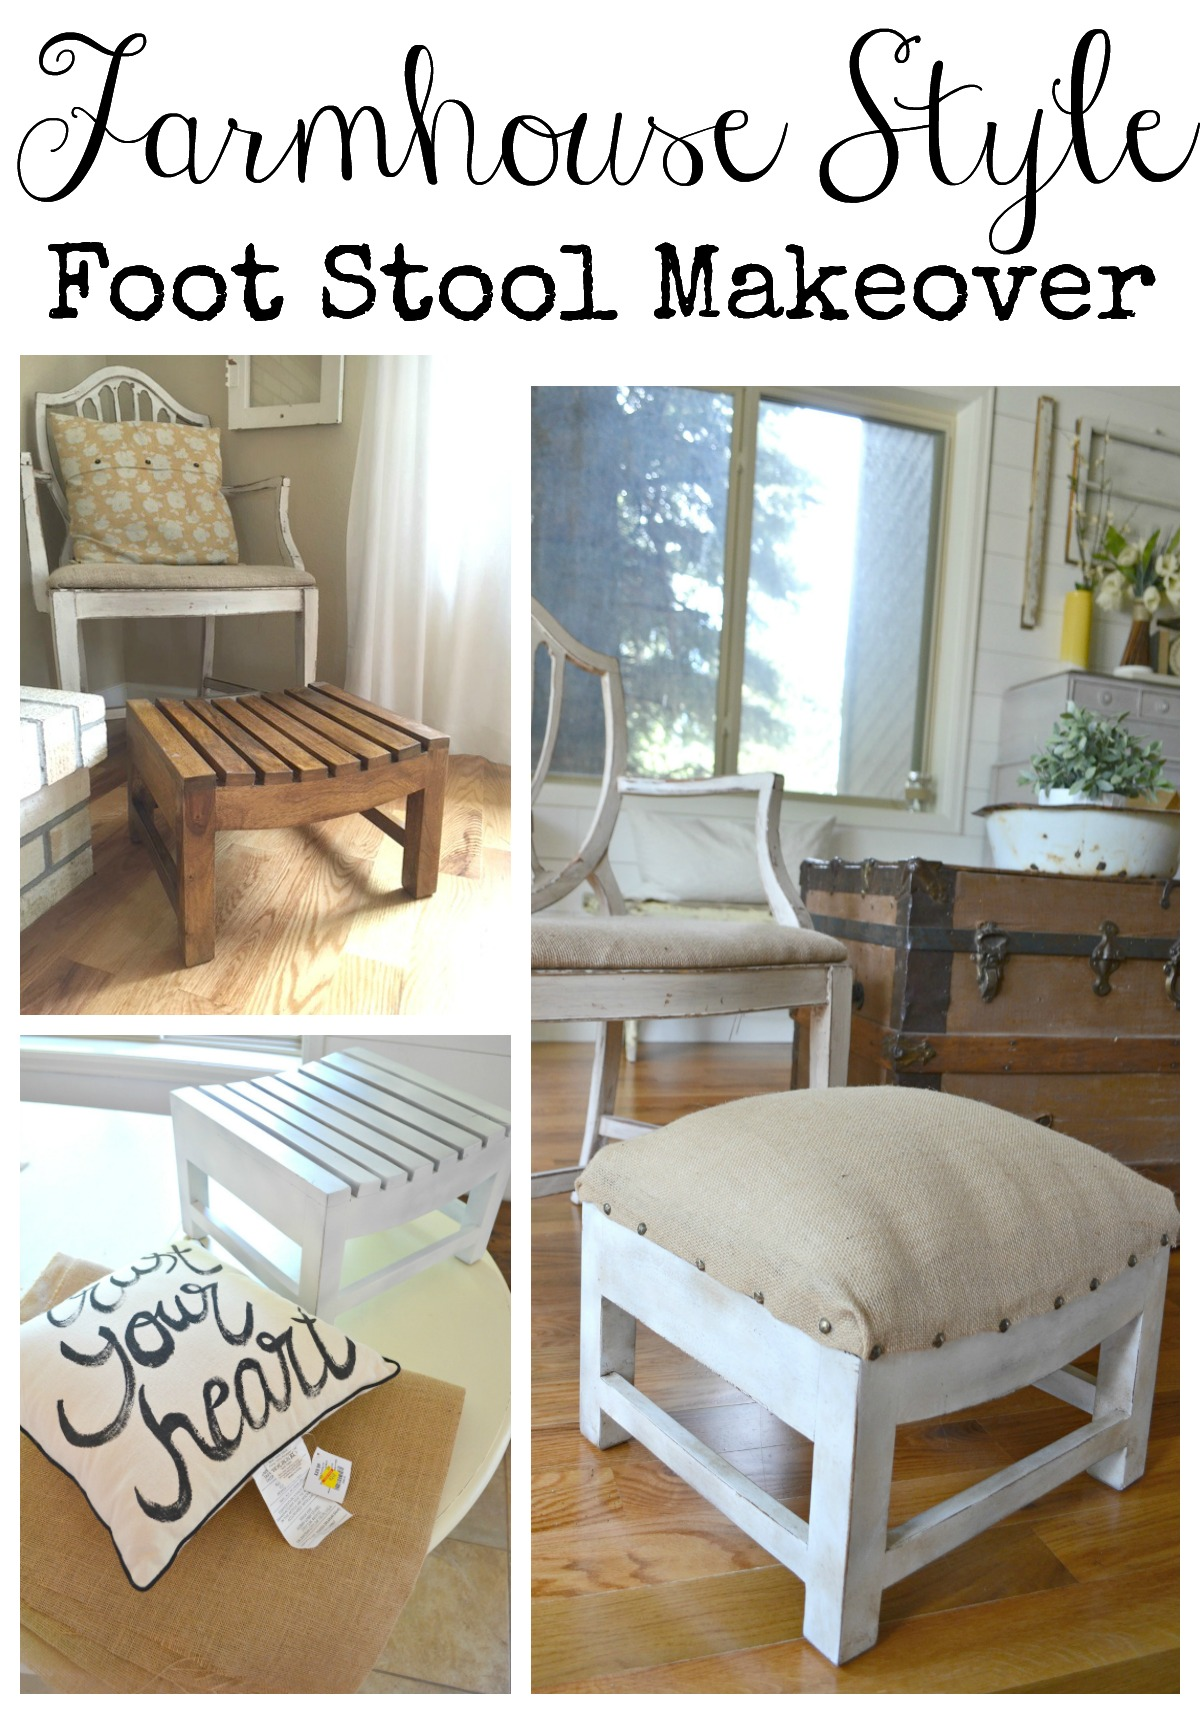 Farmhouse Style Foot Stool Makeover